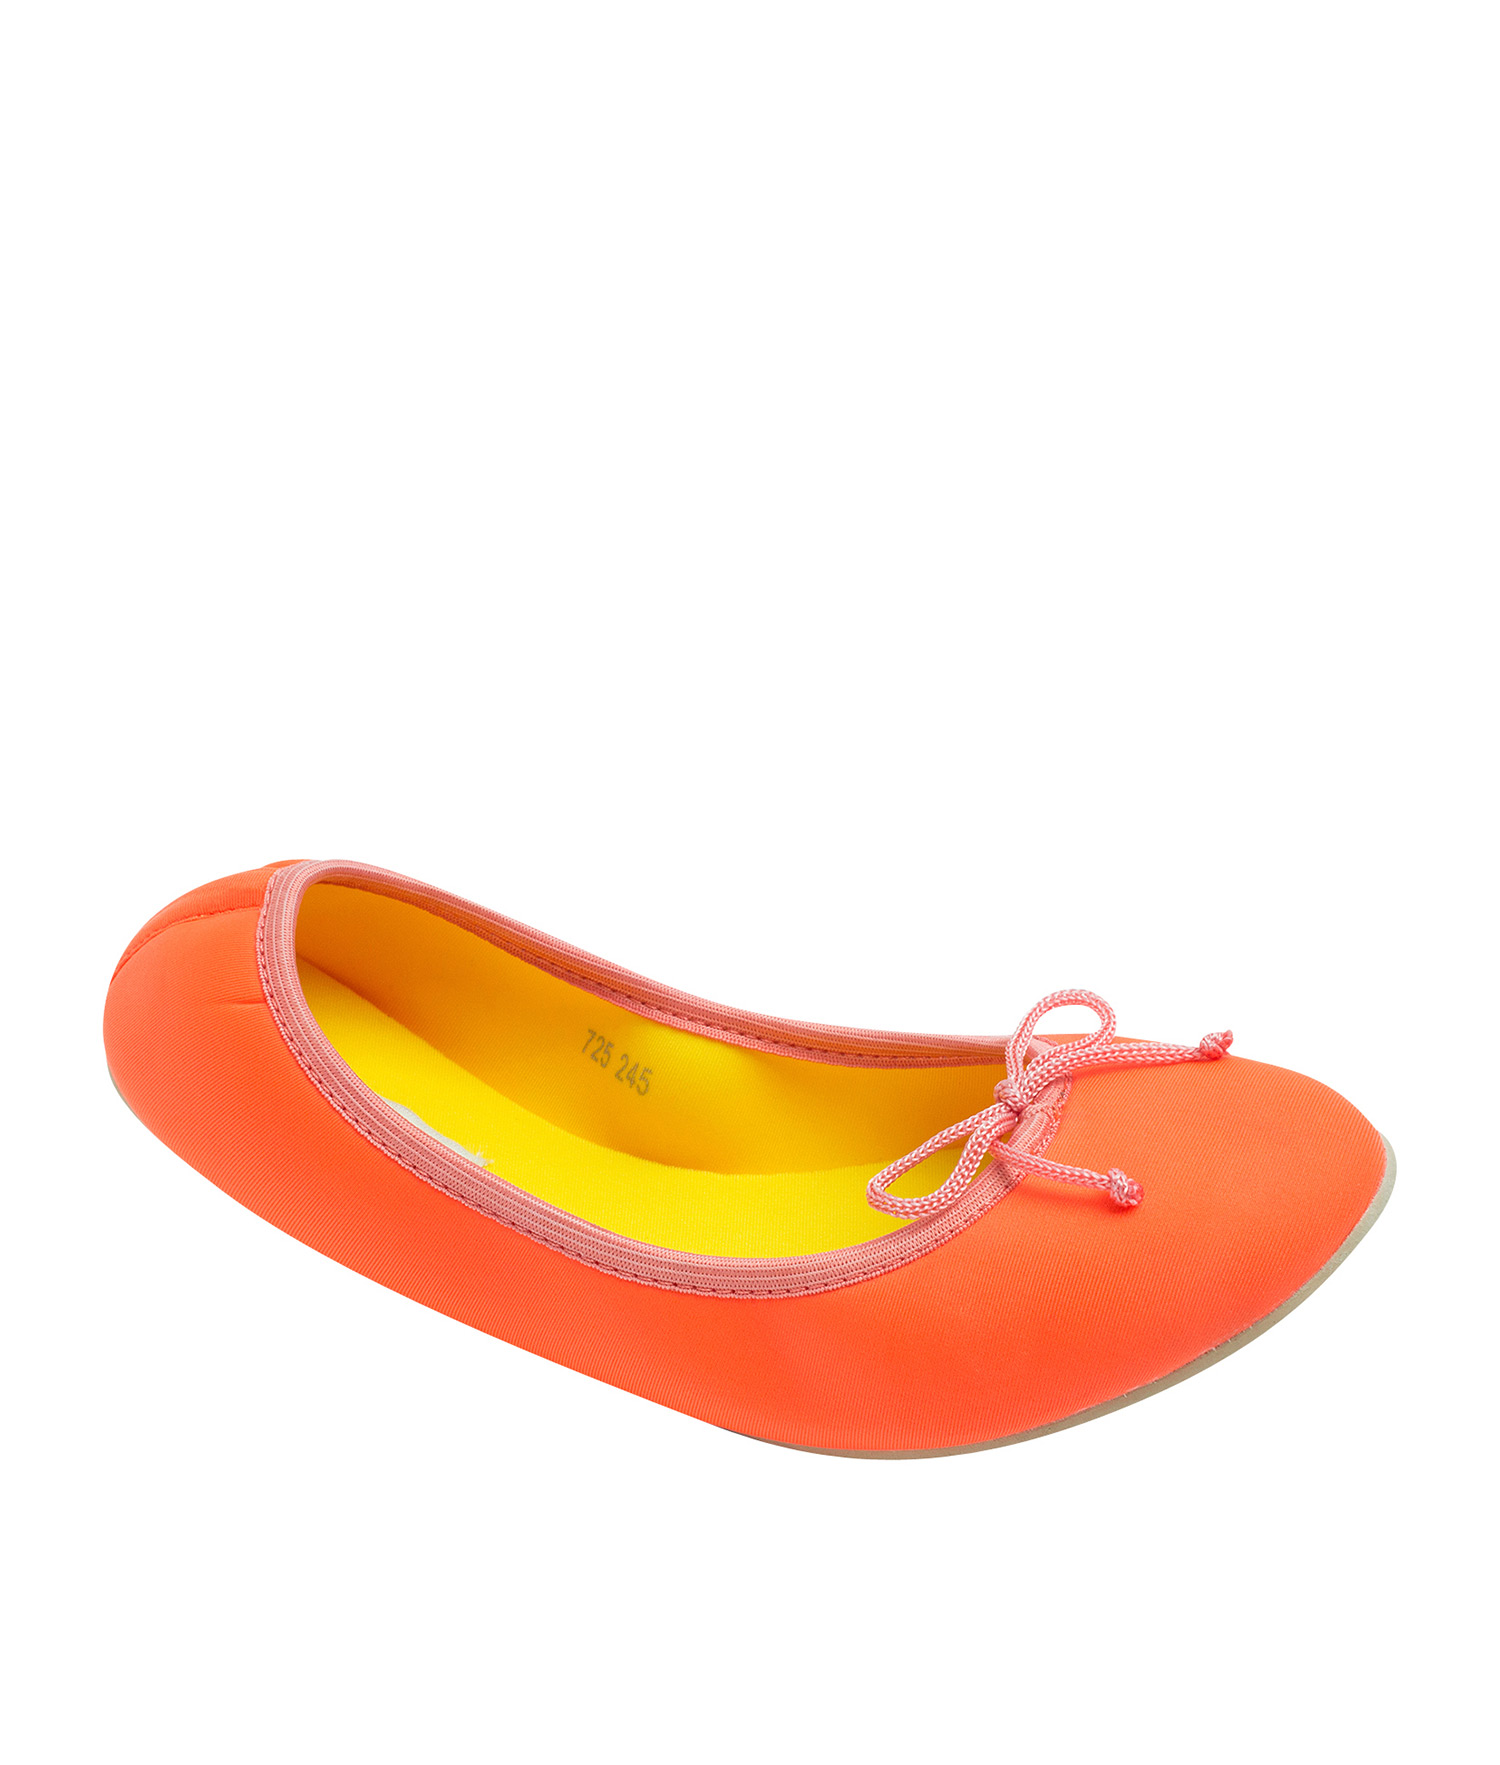 AnnaKastle Womens Neoprene Foldable Ballet Flats Cool Colors Neon Orange